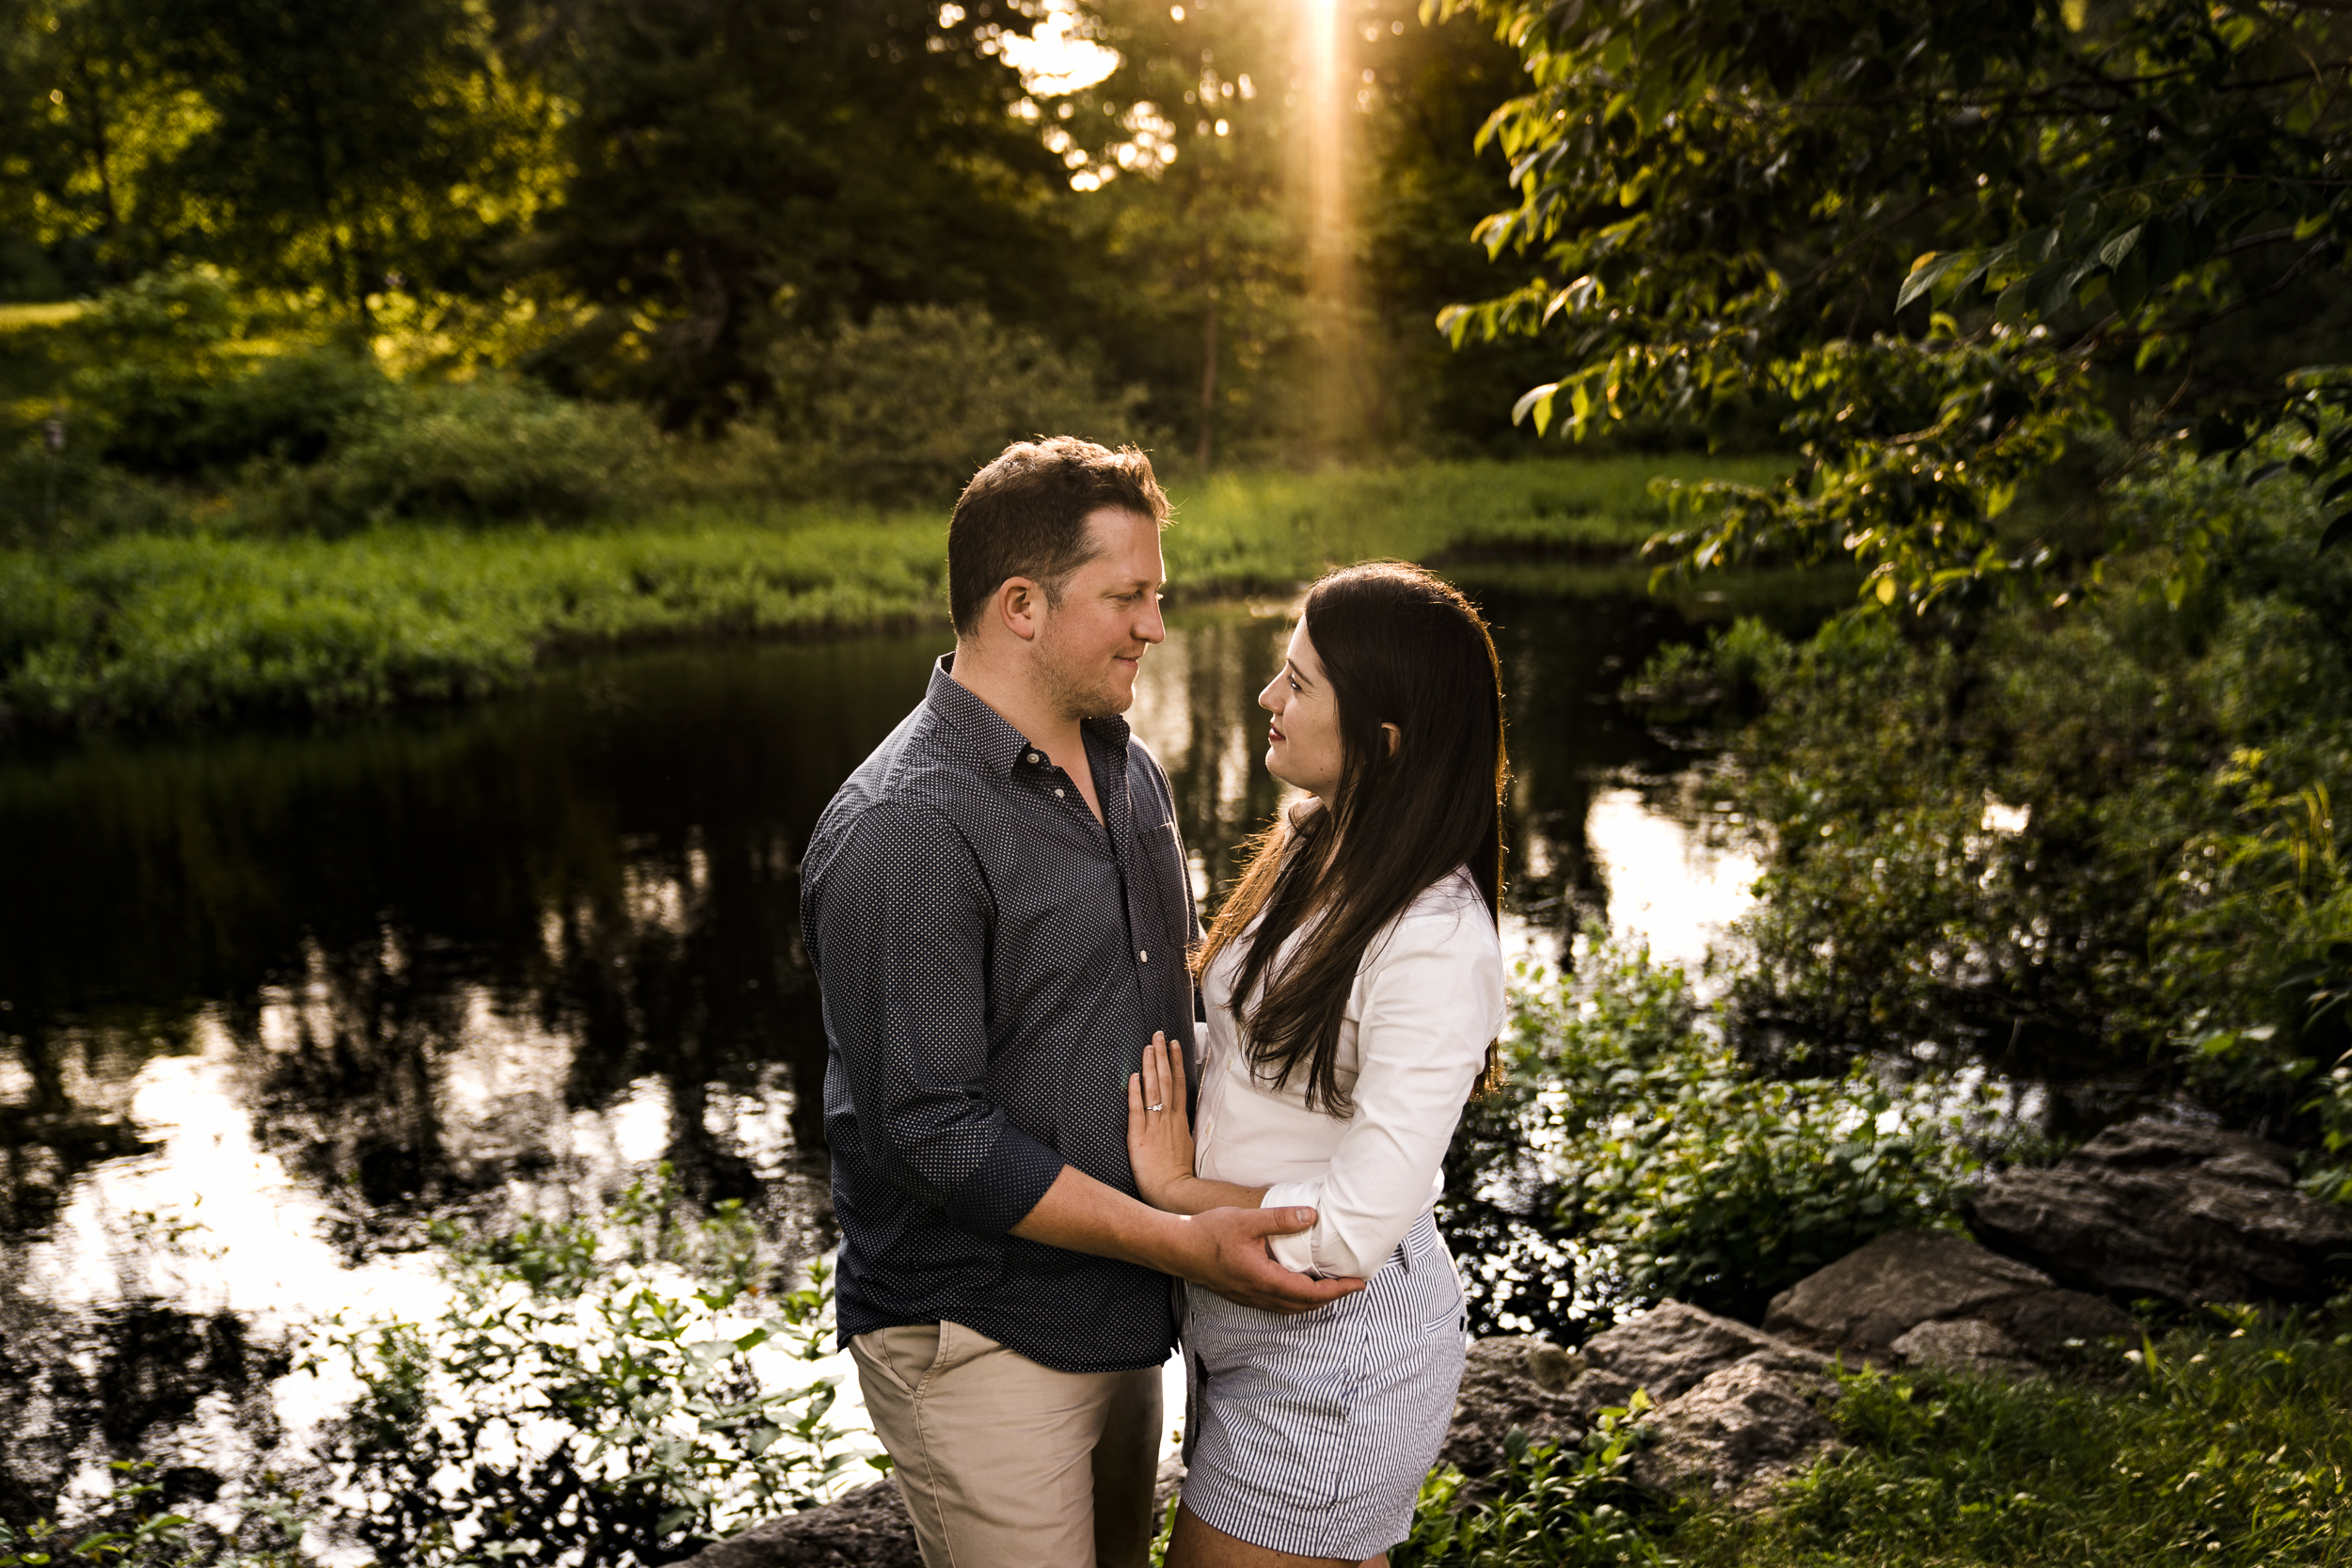 LaurenKevin_Engagement_BLOG_023.jpg